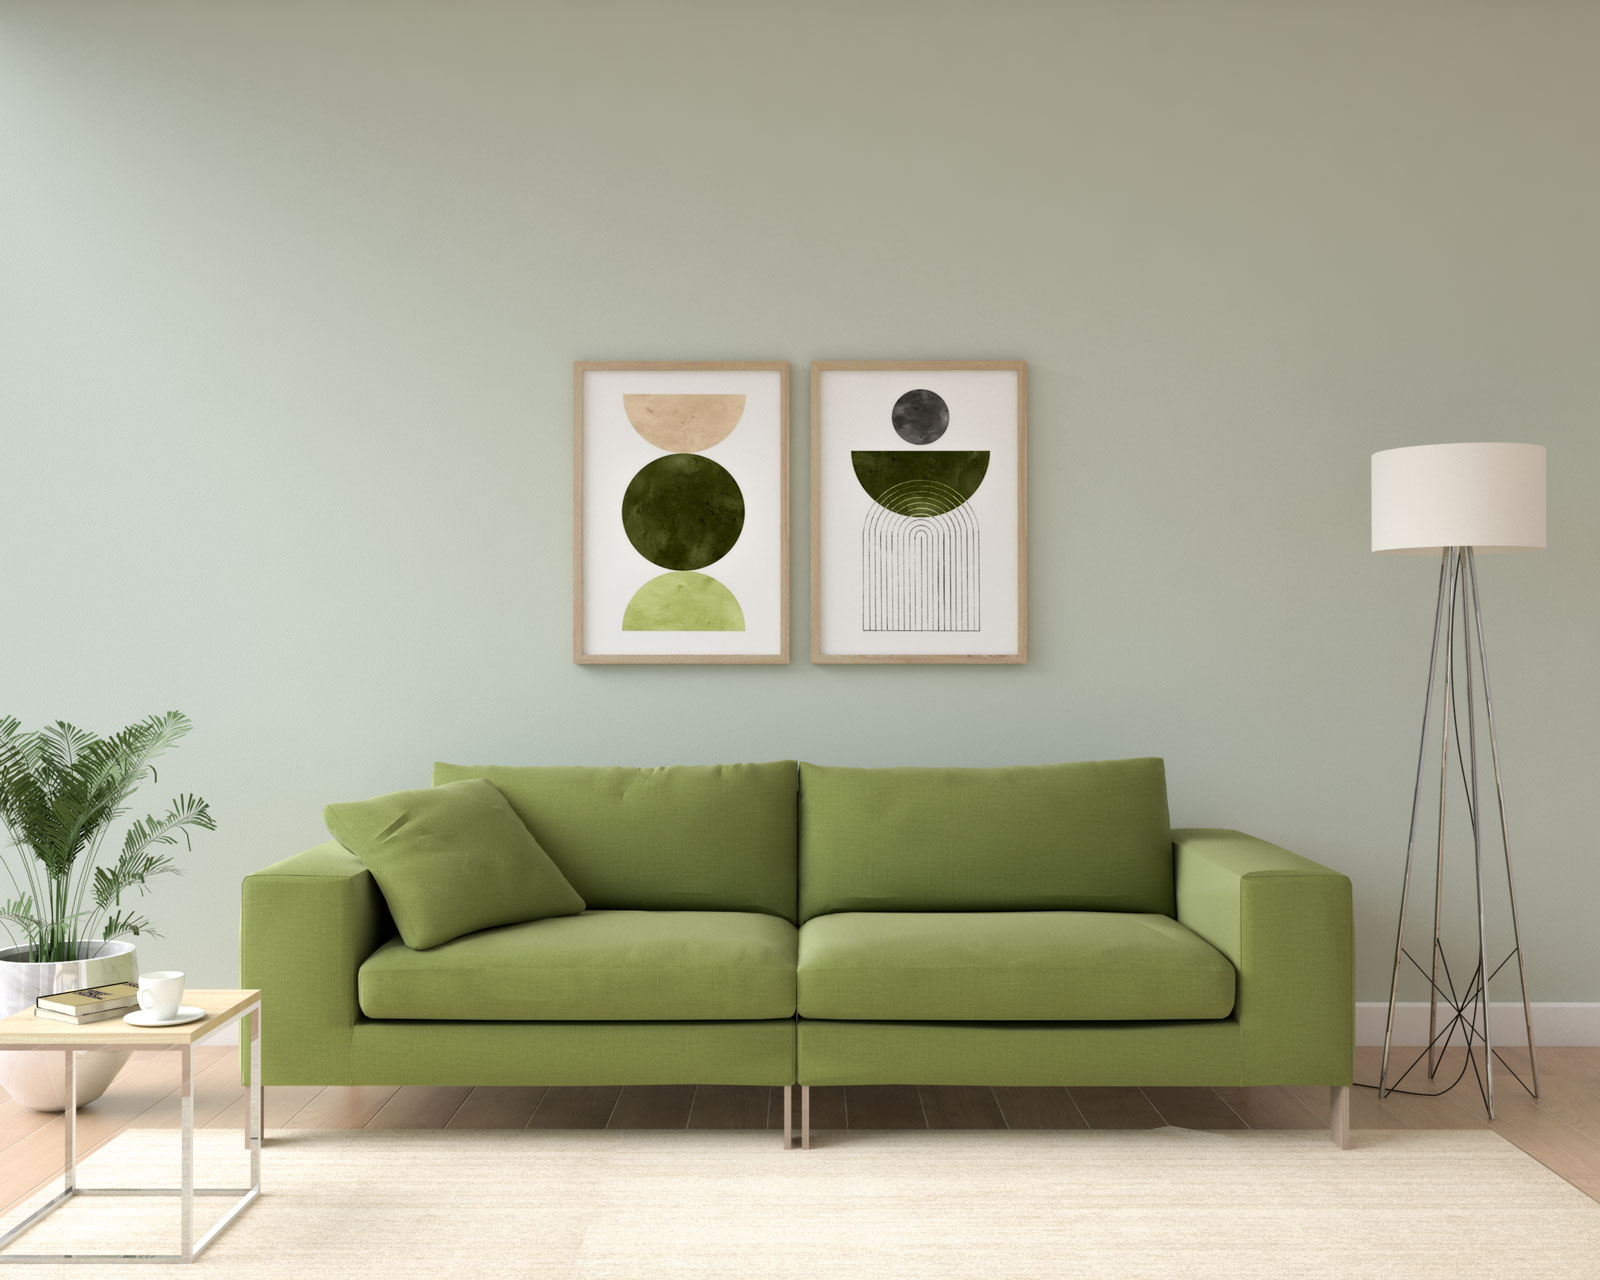 Light sage wall with olive green couch